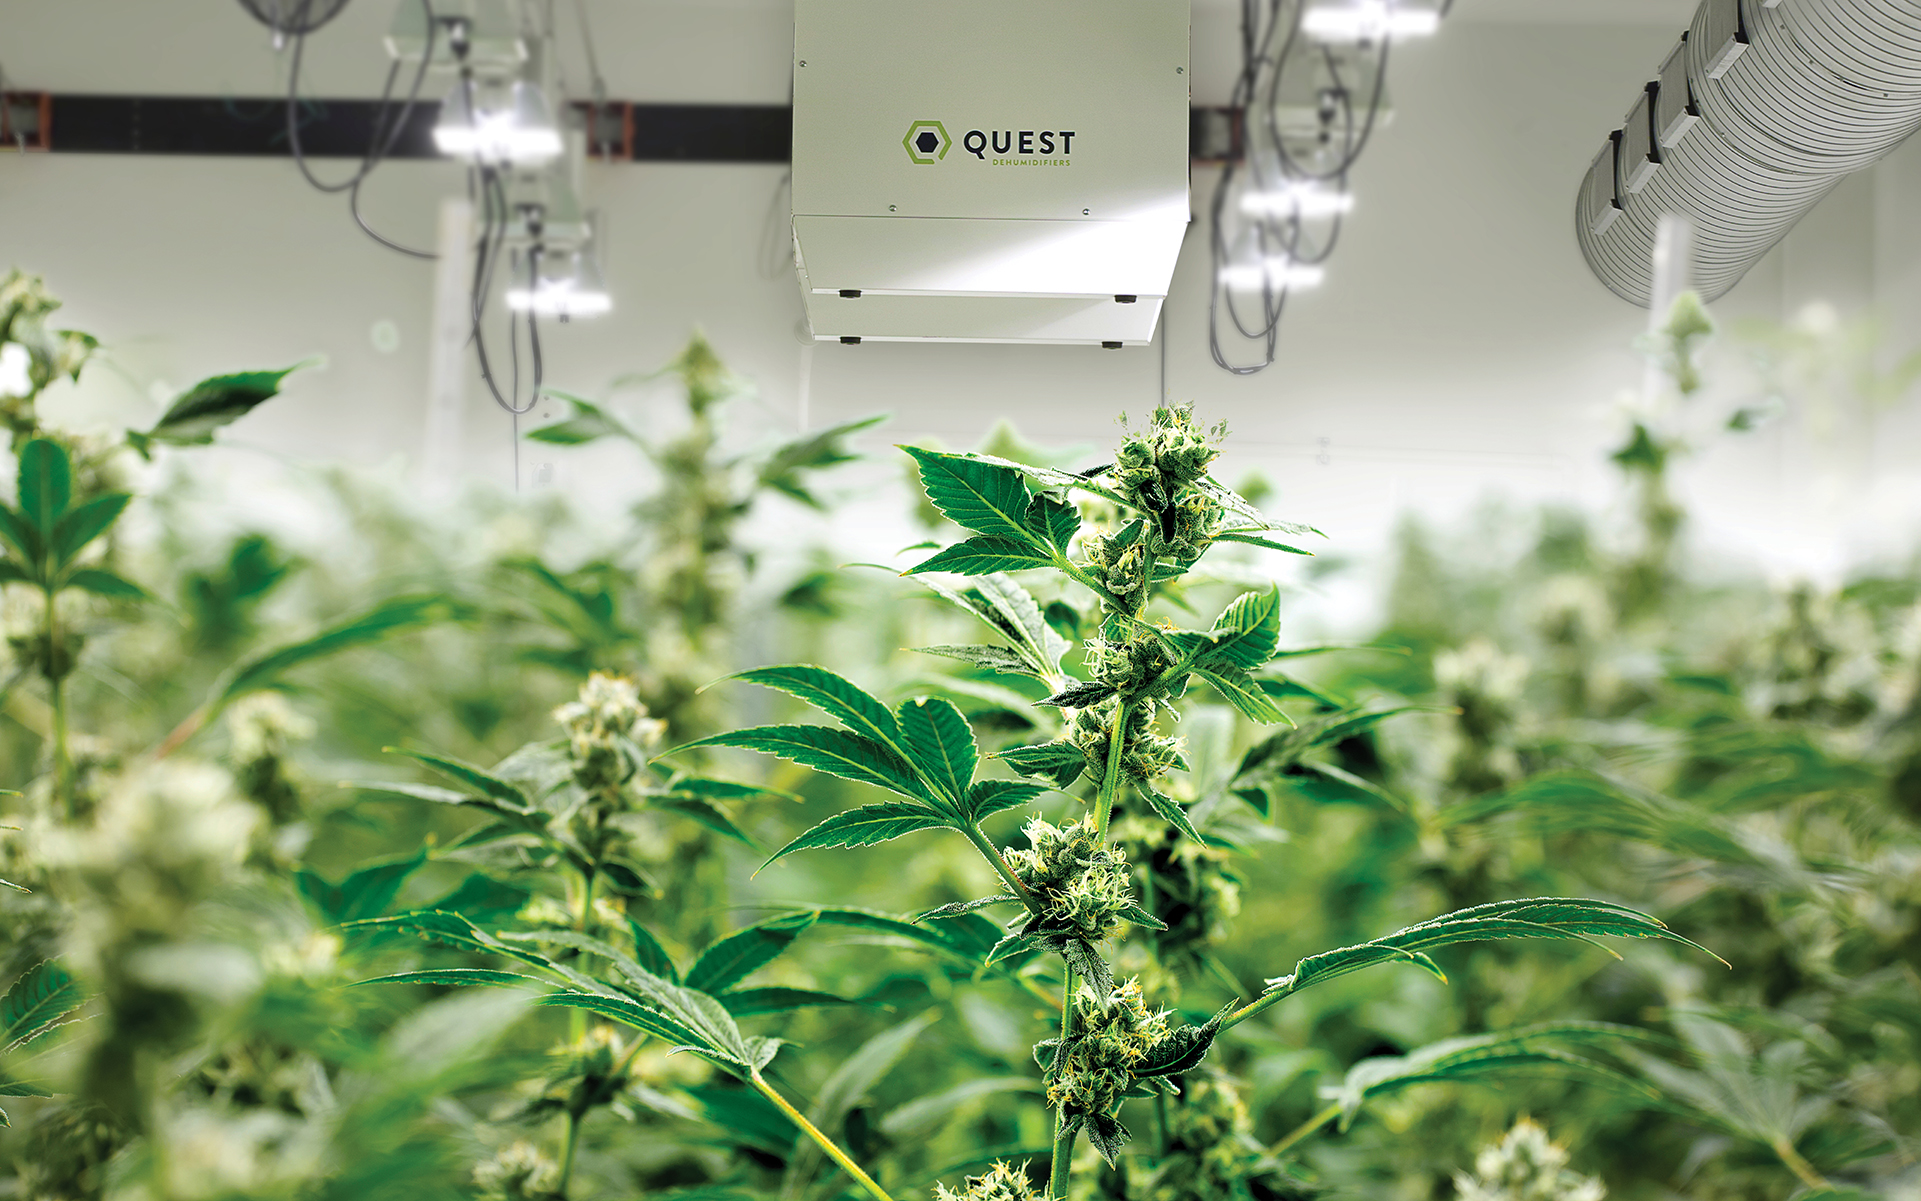 Is a tailor-made HVAC system the key to creating ideal cannabis growing conditions?